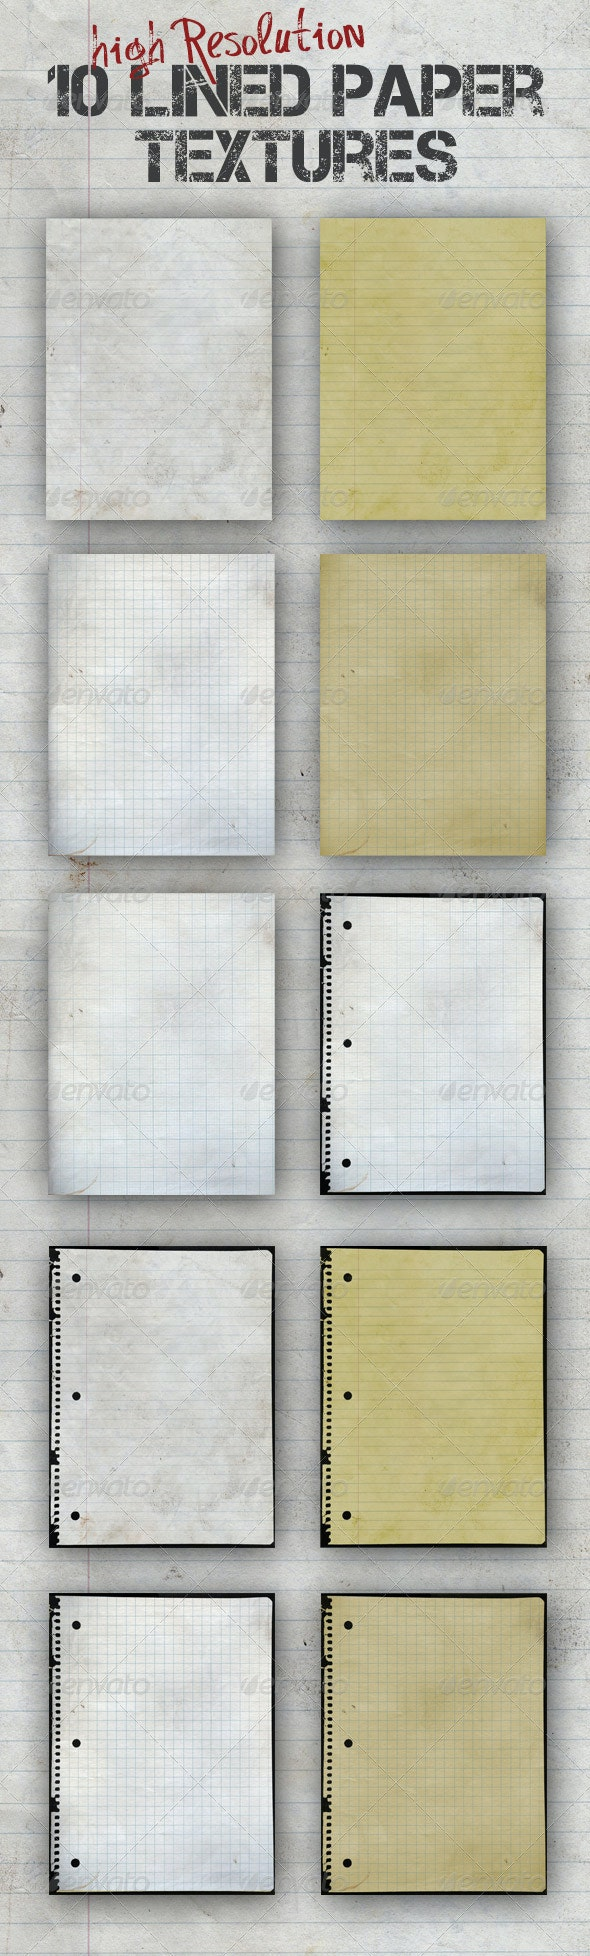 10 Lined Paper Textures - Paper Textures